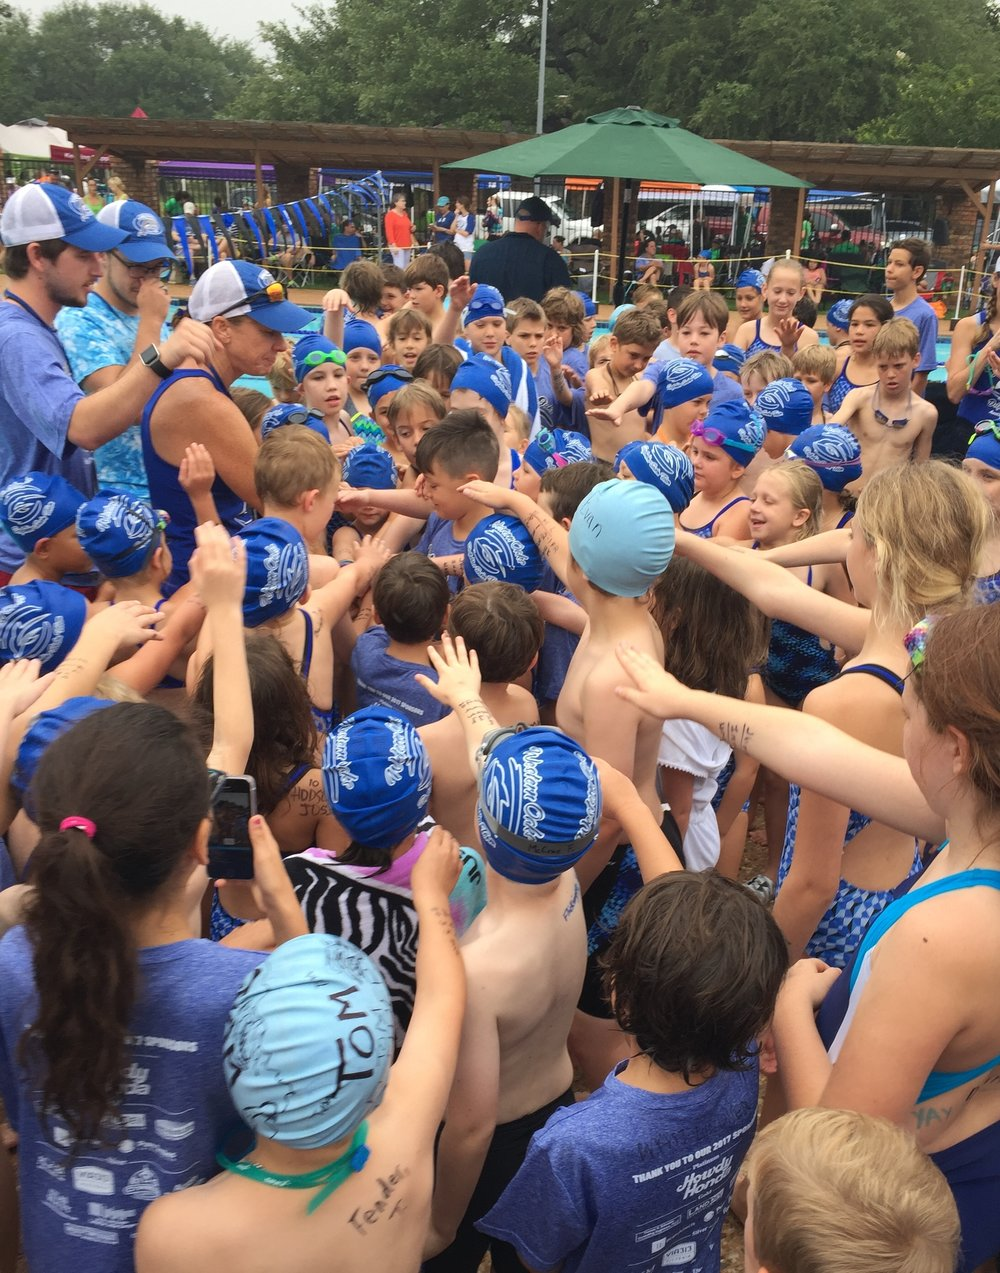 Pi Architects is proud to sponsor the Western Oaks Swim Team in Austin, Texas. Youth swimmers of all ages come together each summer to compete, build friendships, and build confidence in the water. Most importantly they learn important life skills such as teamwork and good sportsmanship.